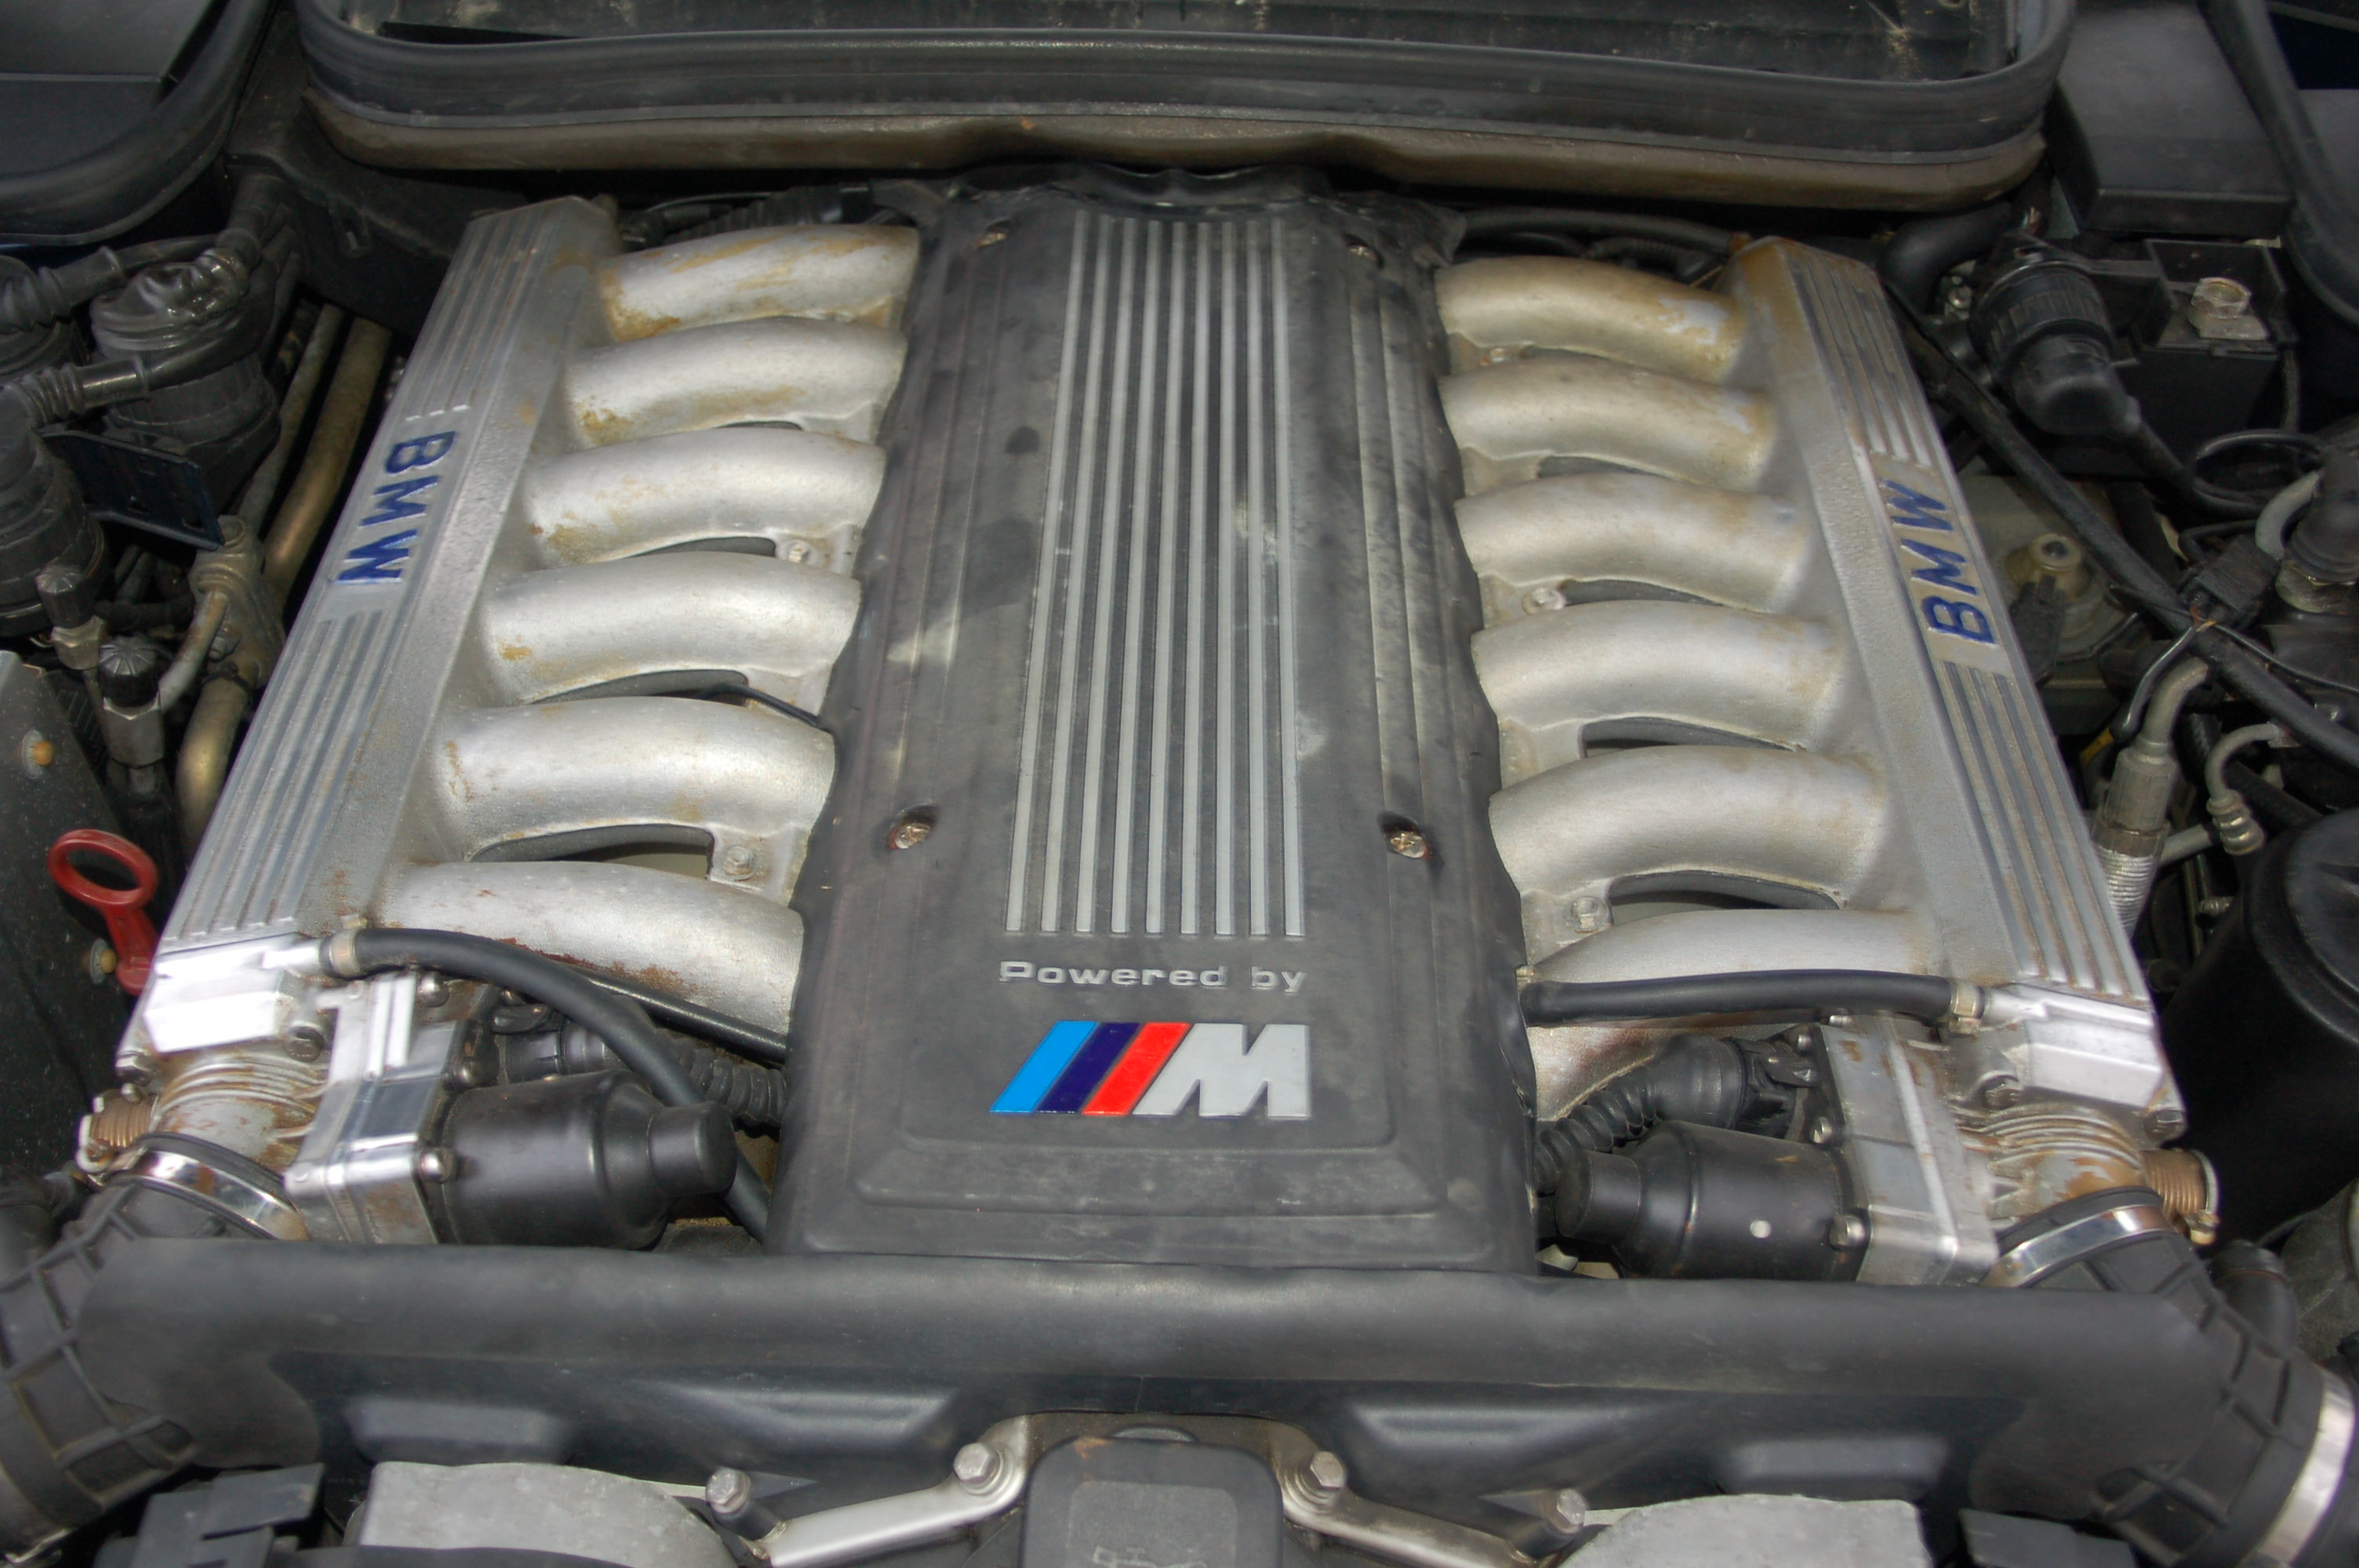 Bmw V12 Engine For Sale Bmw 850csi S70 V12 Engine